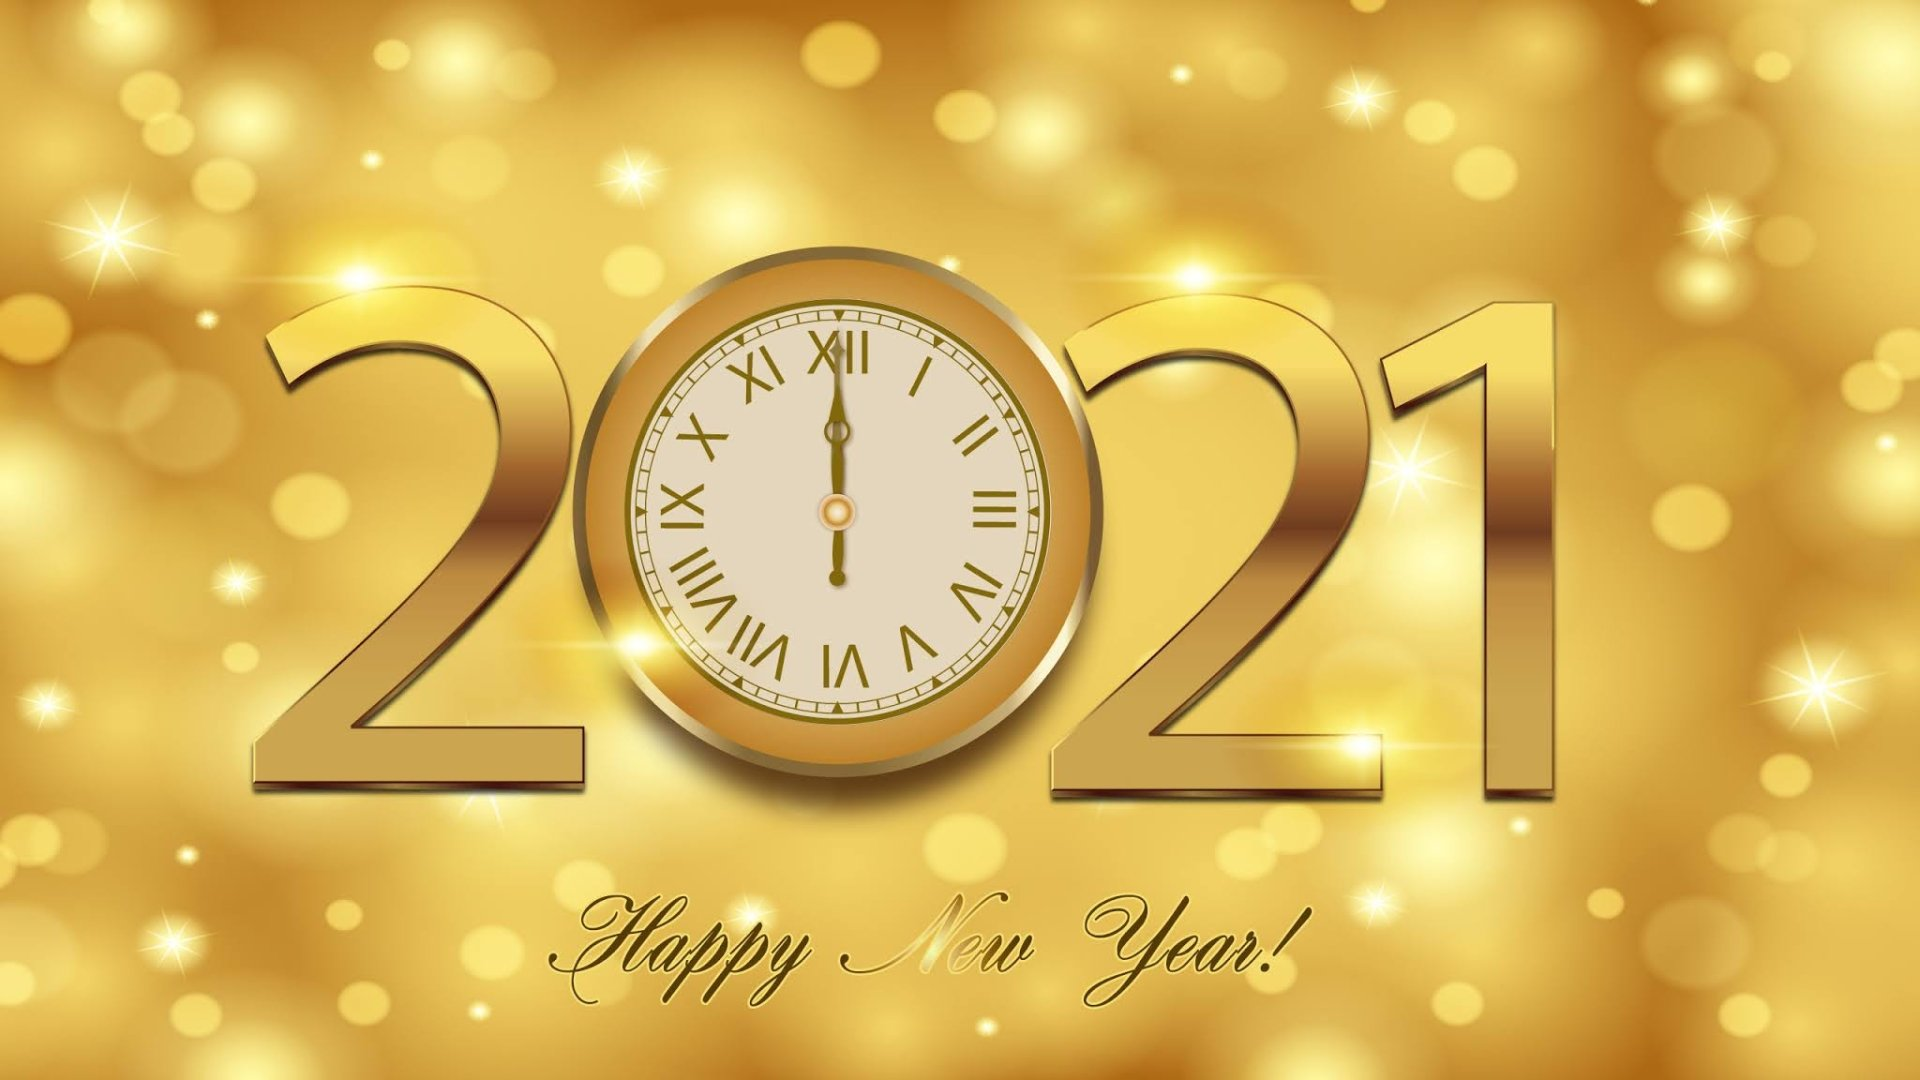 Happy New Year Images HD Wallpaper 1920x1080